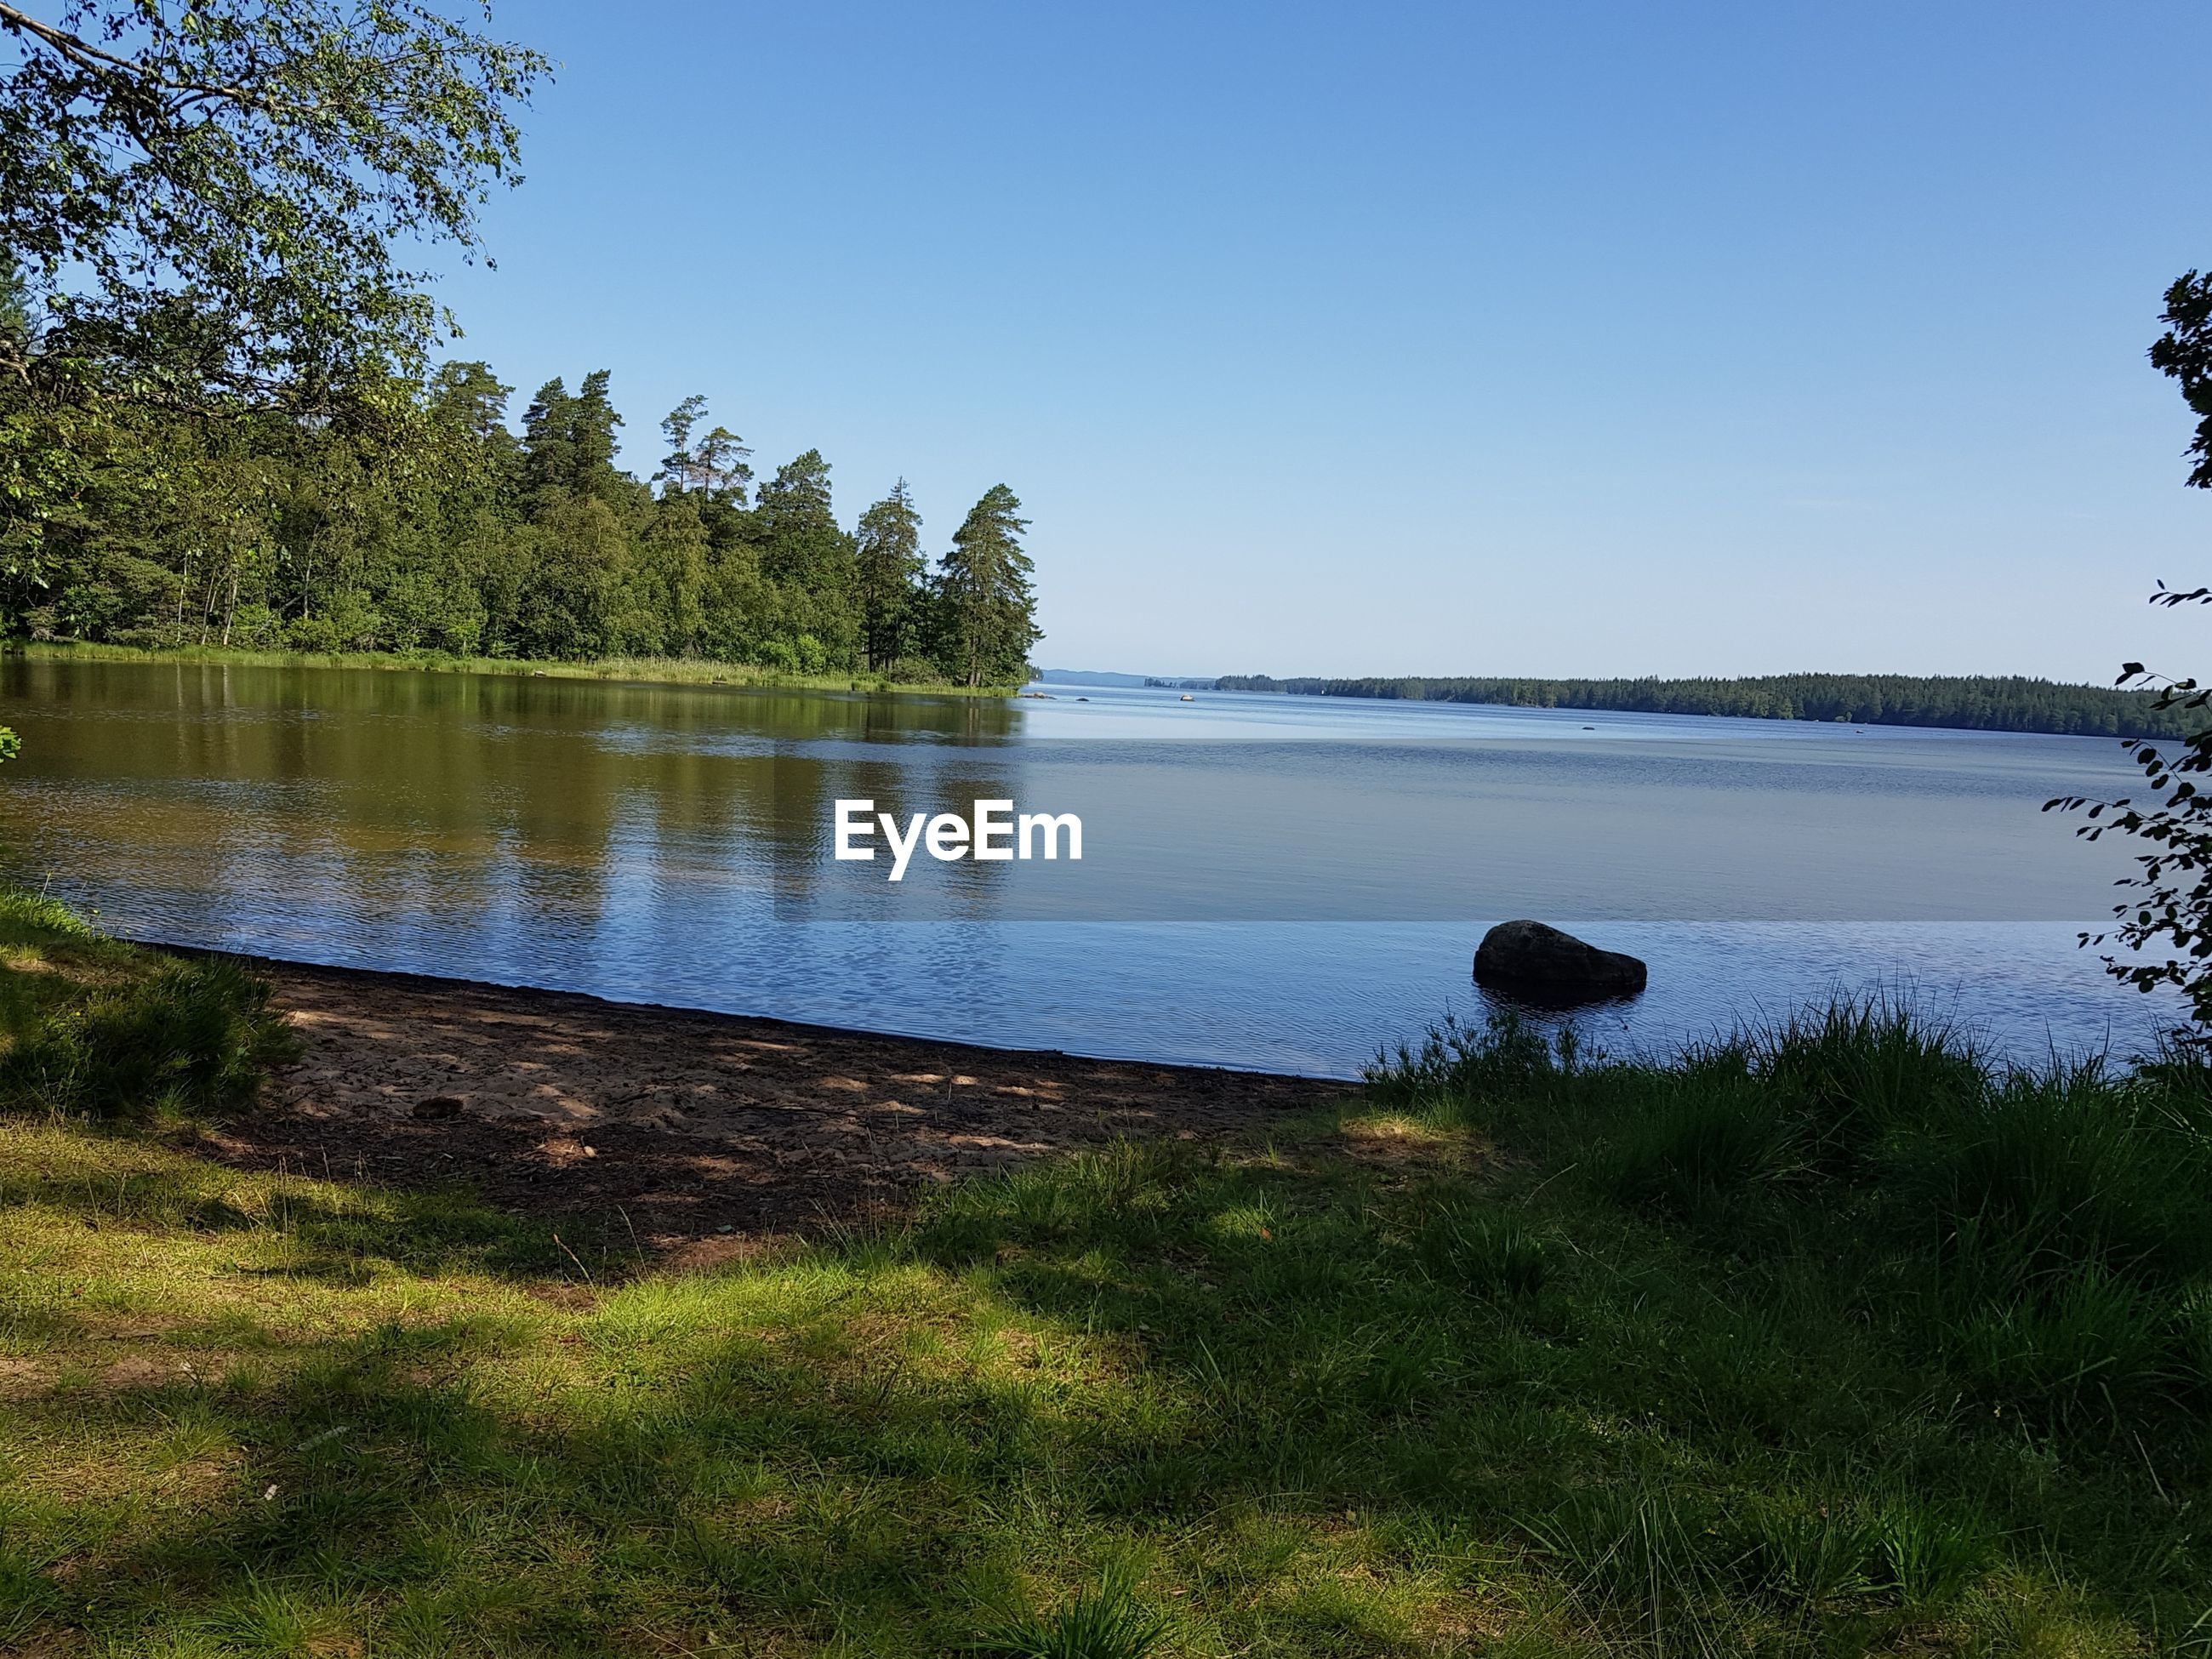 SCENIC VIEW OF LAKE AND TREES AGAINST CLEAR SKY